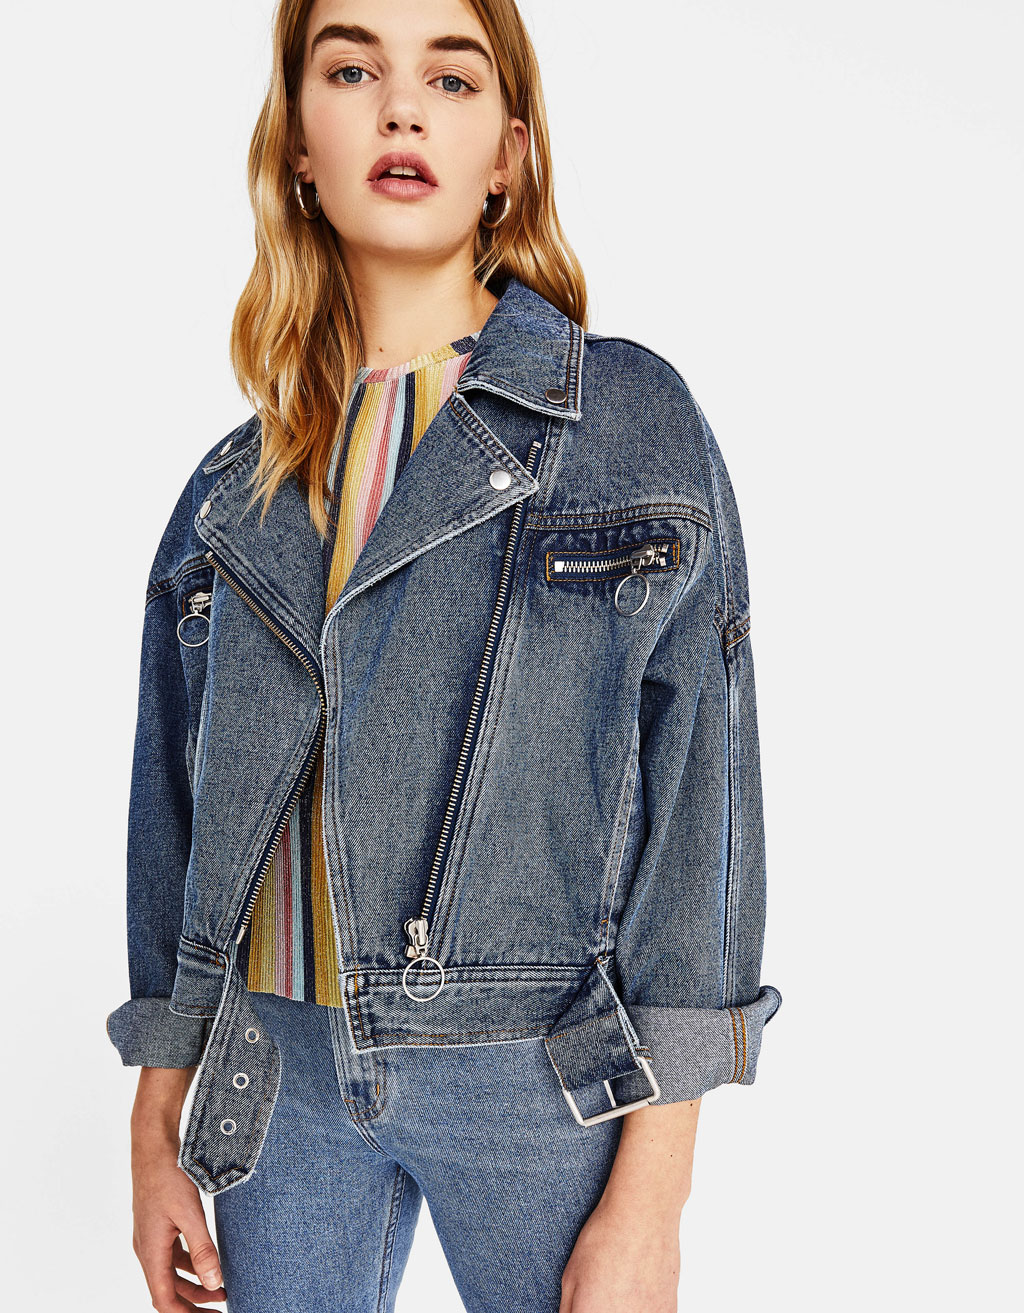 Giubbotto in denim tipo biker